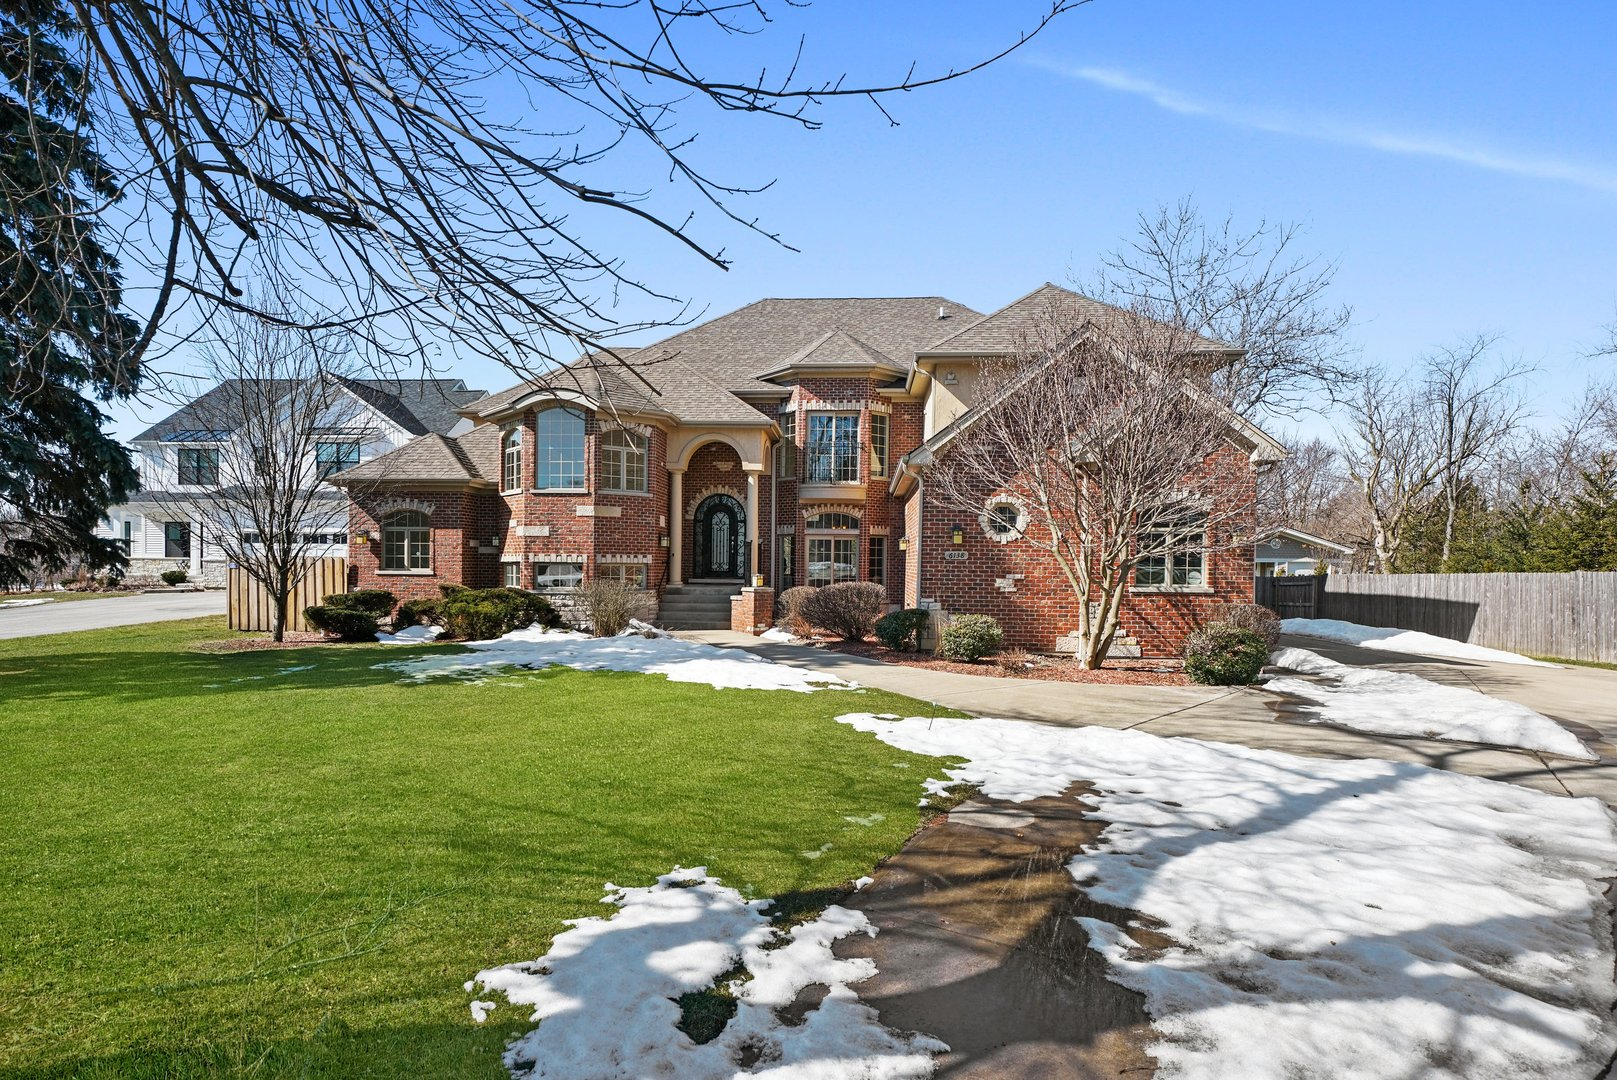 6138 Boundary Road, Downers Grove, Il 60515